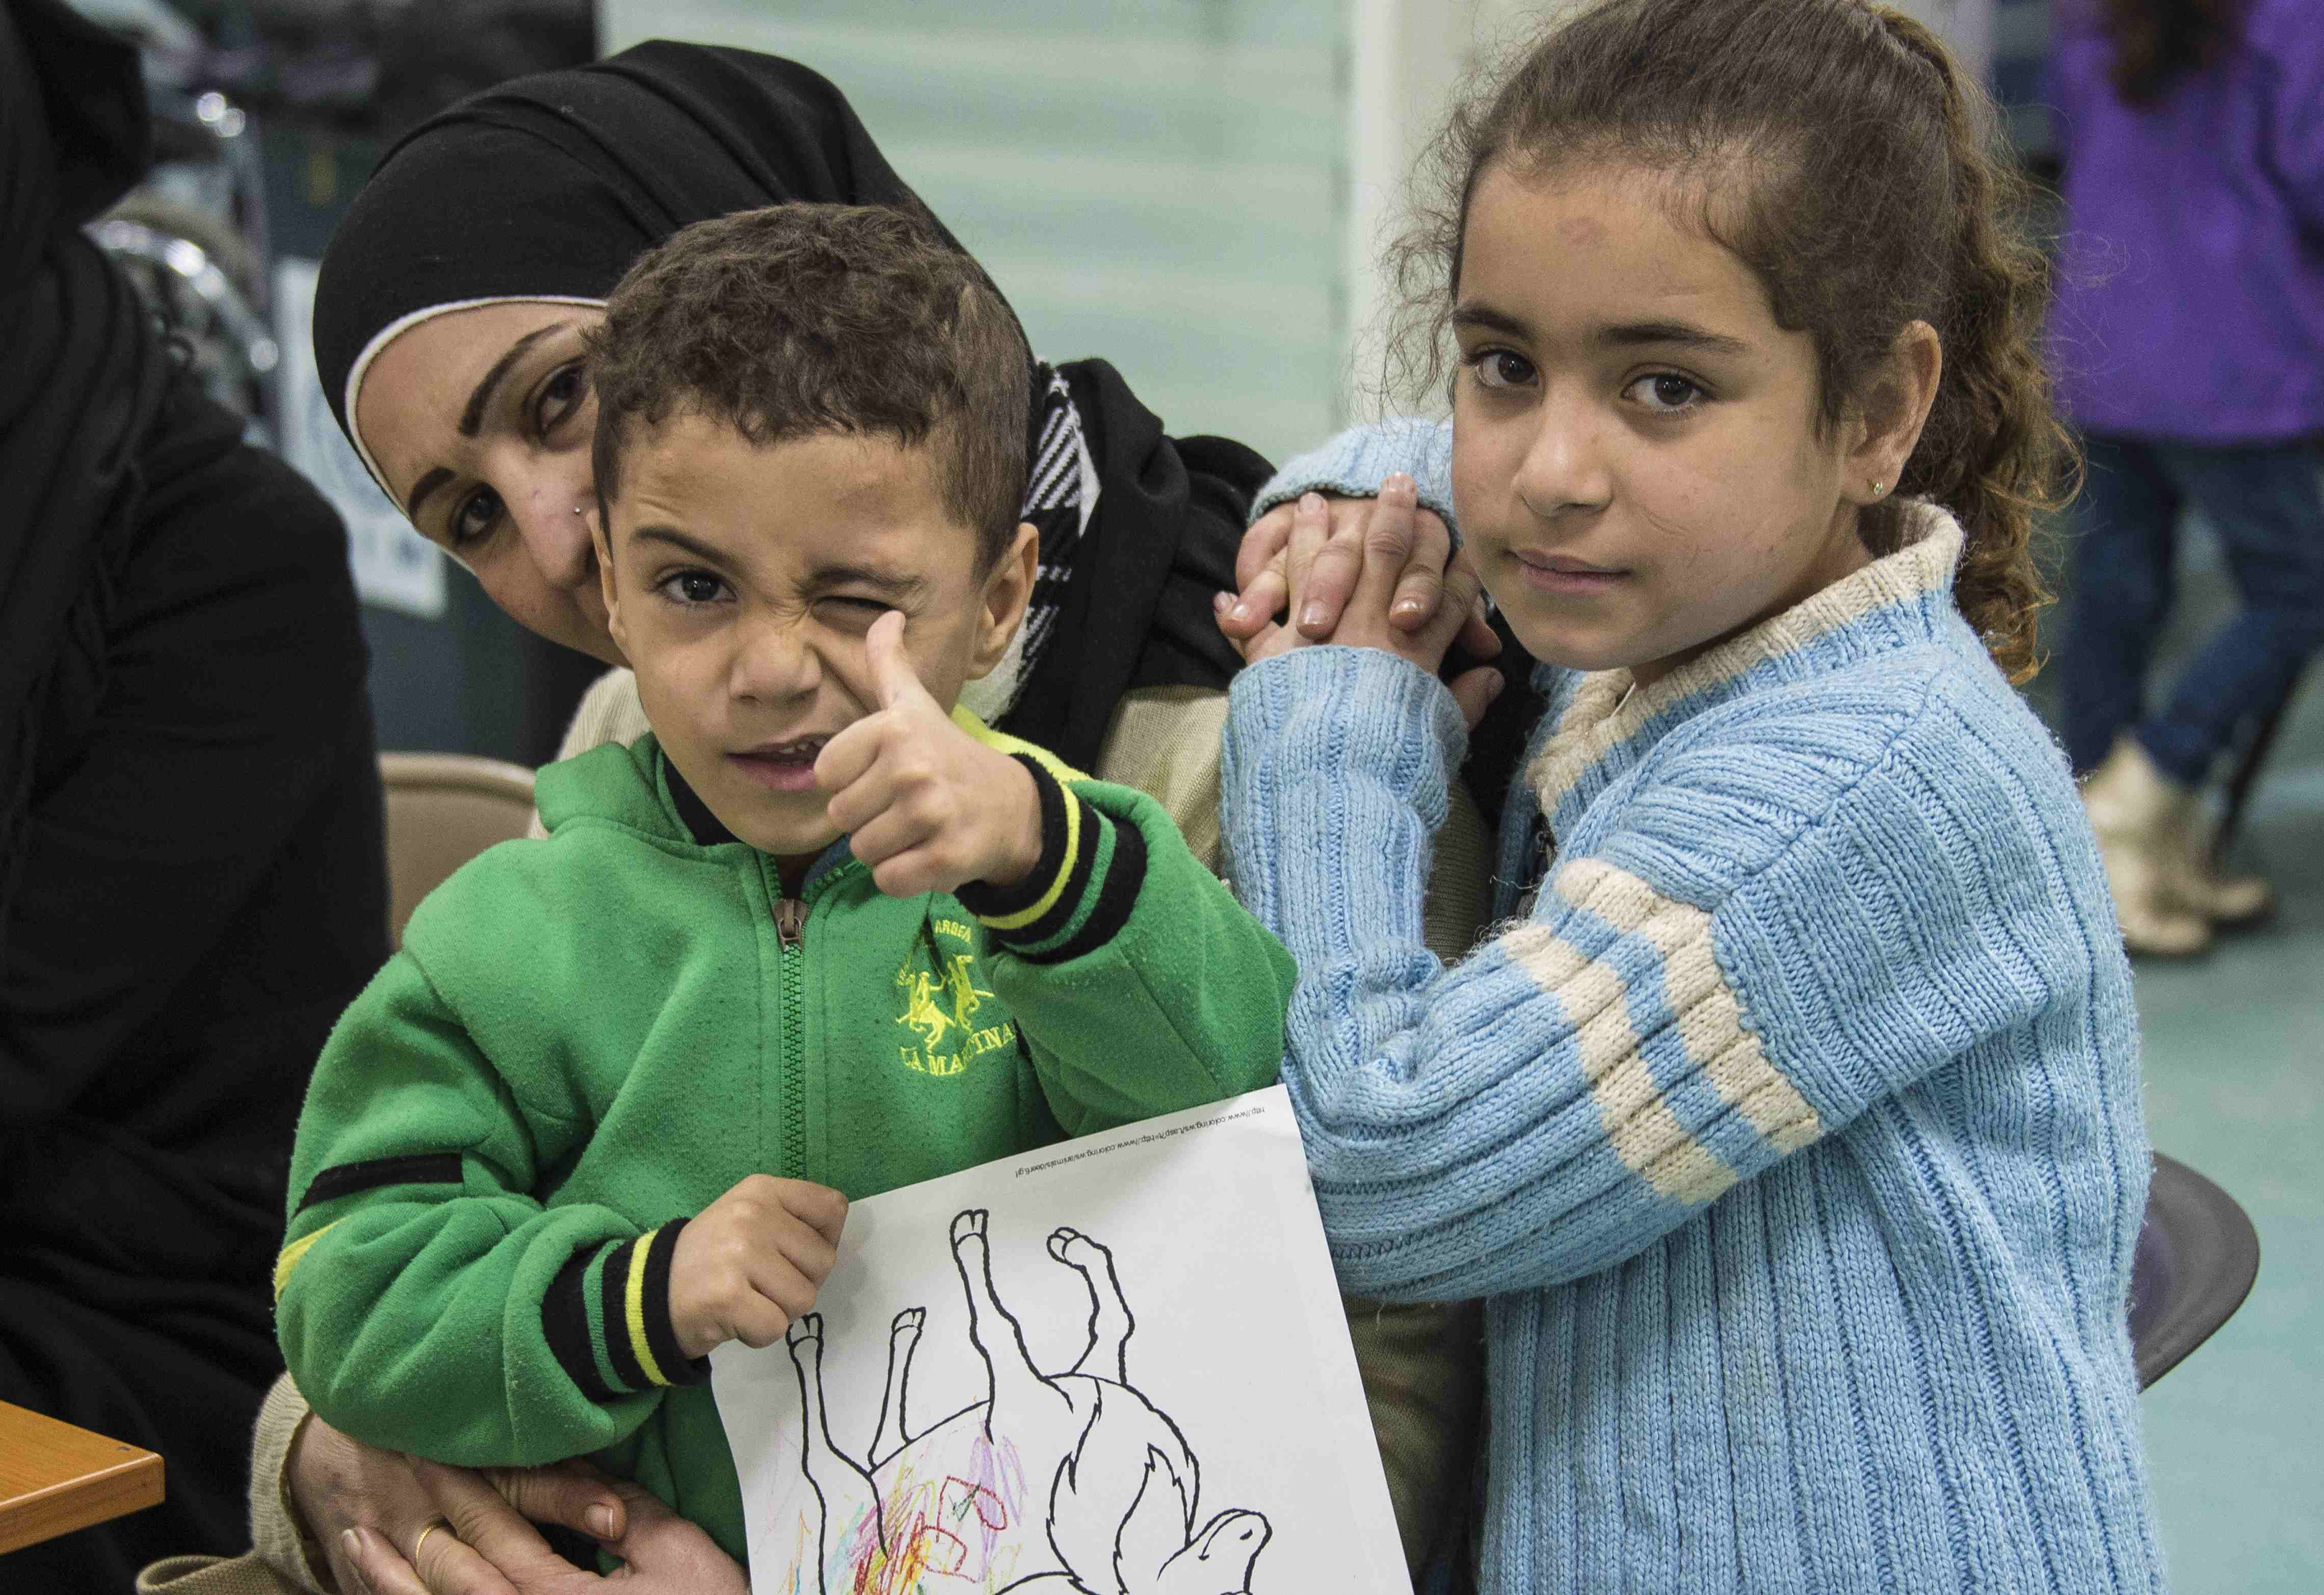 Two Syrian refugee children pose while their family undergoes medical screening before the beginning of an airlift to Canada, in Beirut, Lebanon December 9, 2015. The first plane load of Syrian refugees departed from Beirut on Thursday, aboard a military aircraft bound for Toronto. The Liberal government plans to resettle 10,000 refugees from Syria's four-year-old civil war by the end of the year and a further 15,000 by the end of February. Picture taken December 9, 2015. Credit: Reuters/Corporal Darcy Lefebvre/Canadian Forces Combat Camera/Handout via Reuters